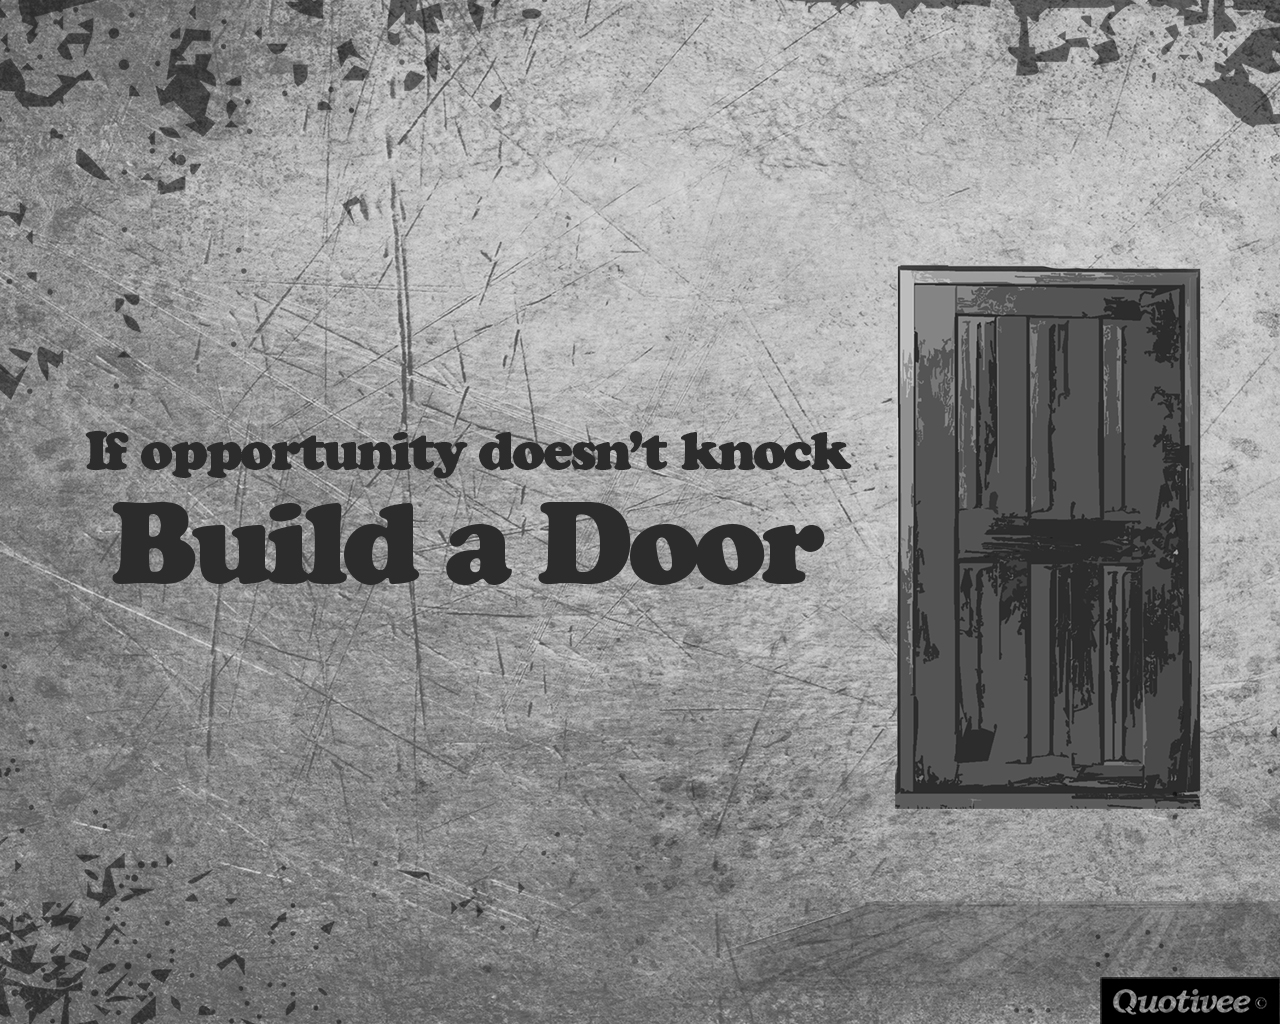 quotivee_1280x1024_0006_If opportunity doesn't knock Build a Door